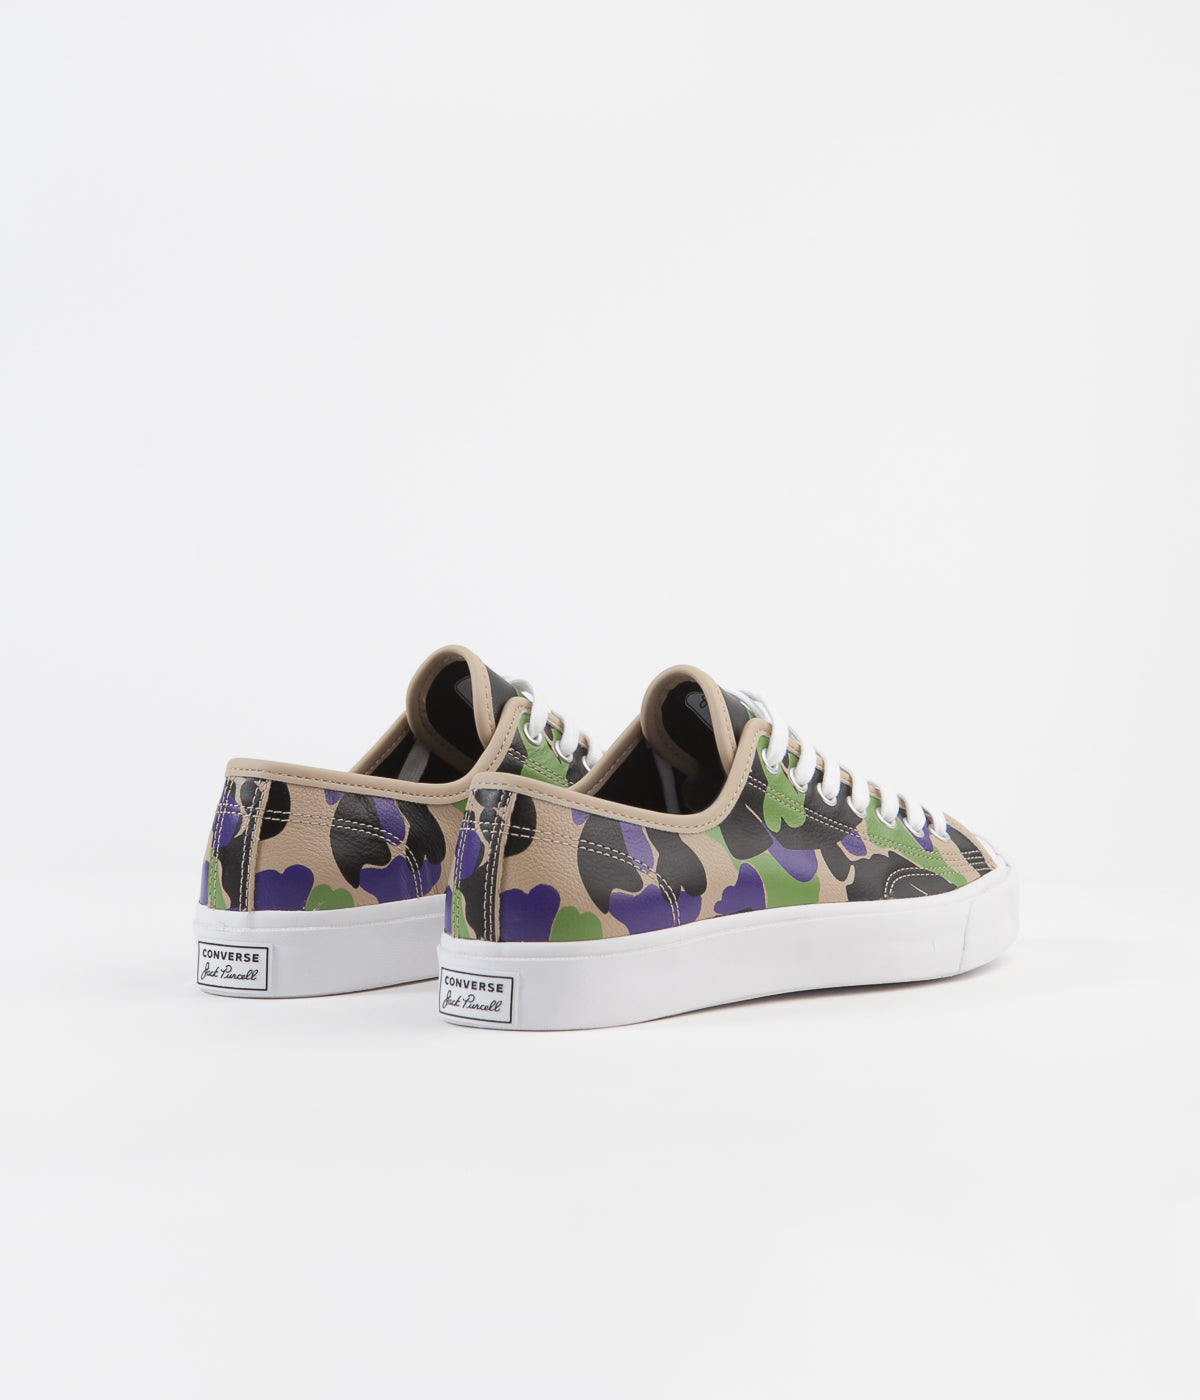 Converse Jack Purcell Ox Archive Prints Leather Shoes - Black / Candied Ginger / Court Purple